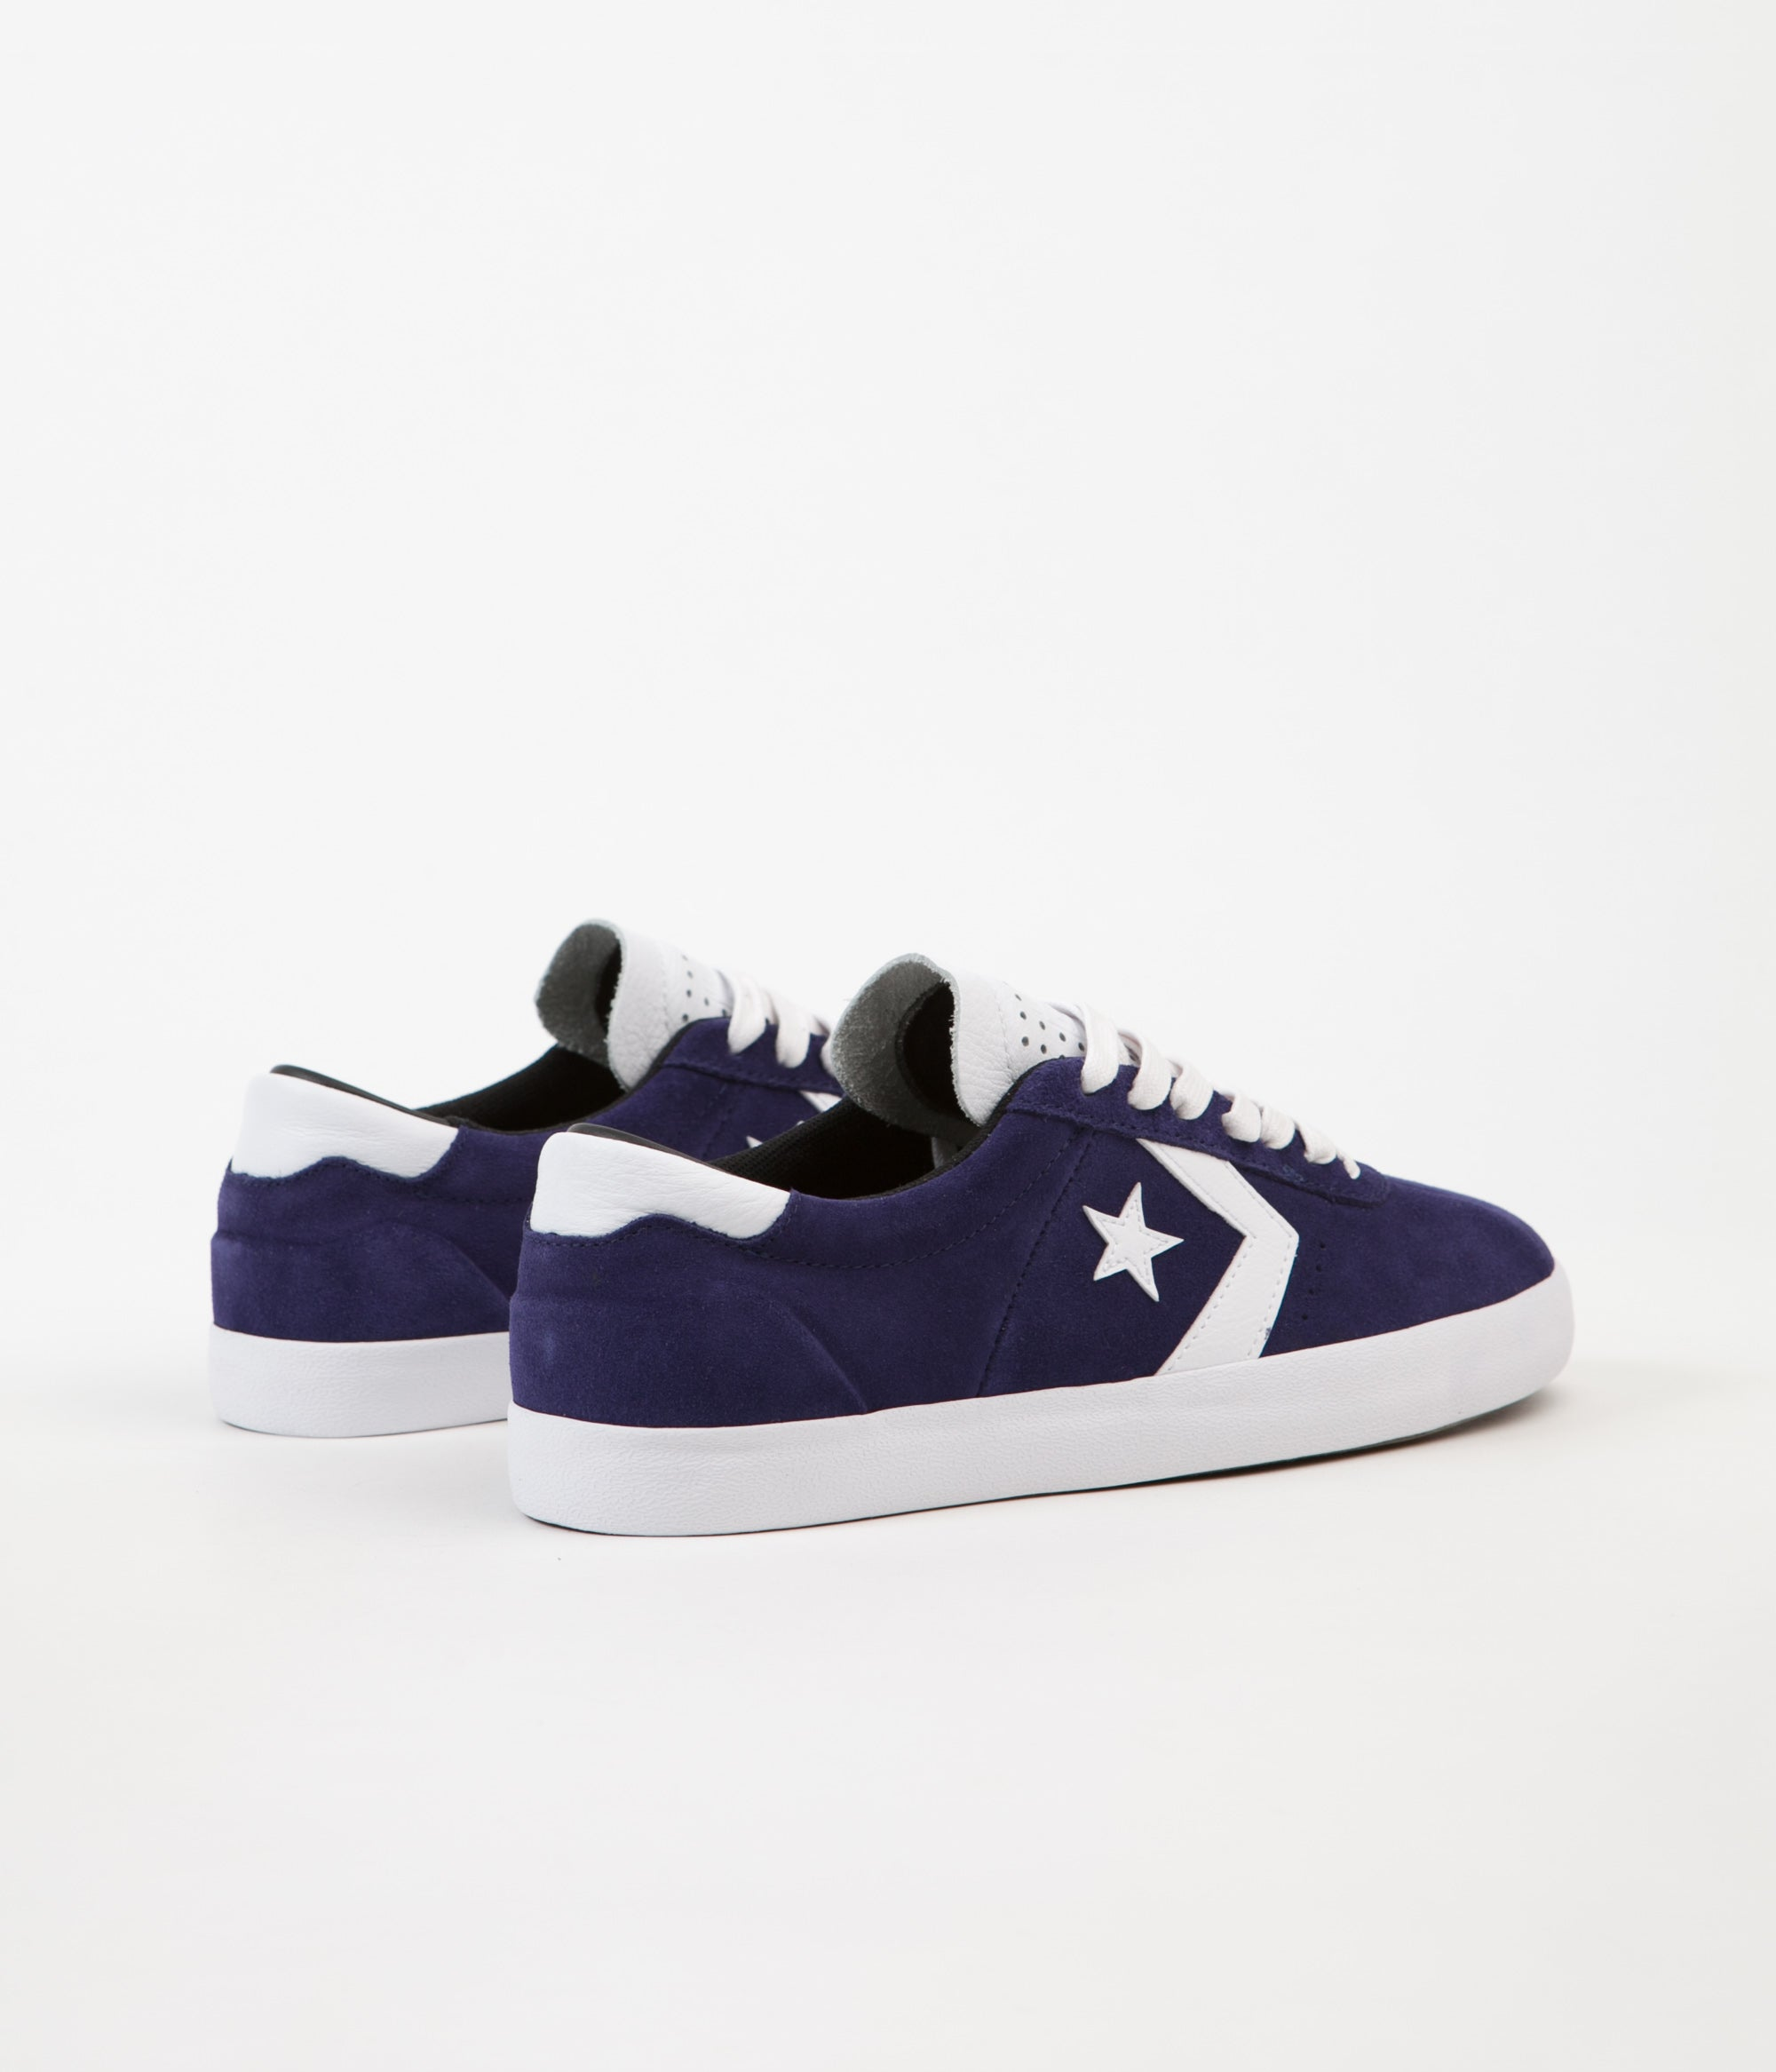 Converse Breakpoint Pro OX Shoes Midnight Indigo White at